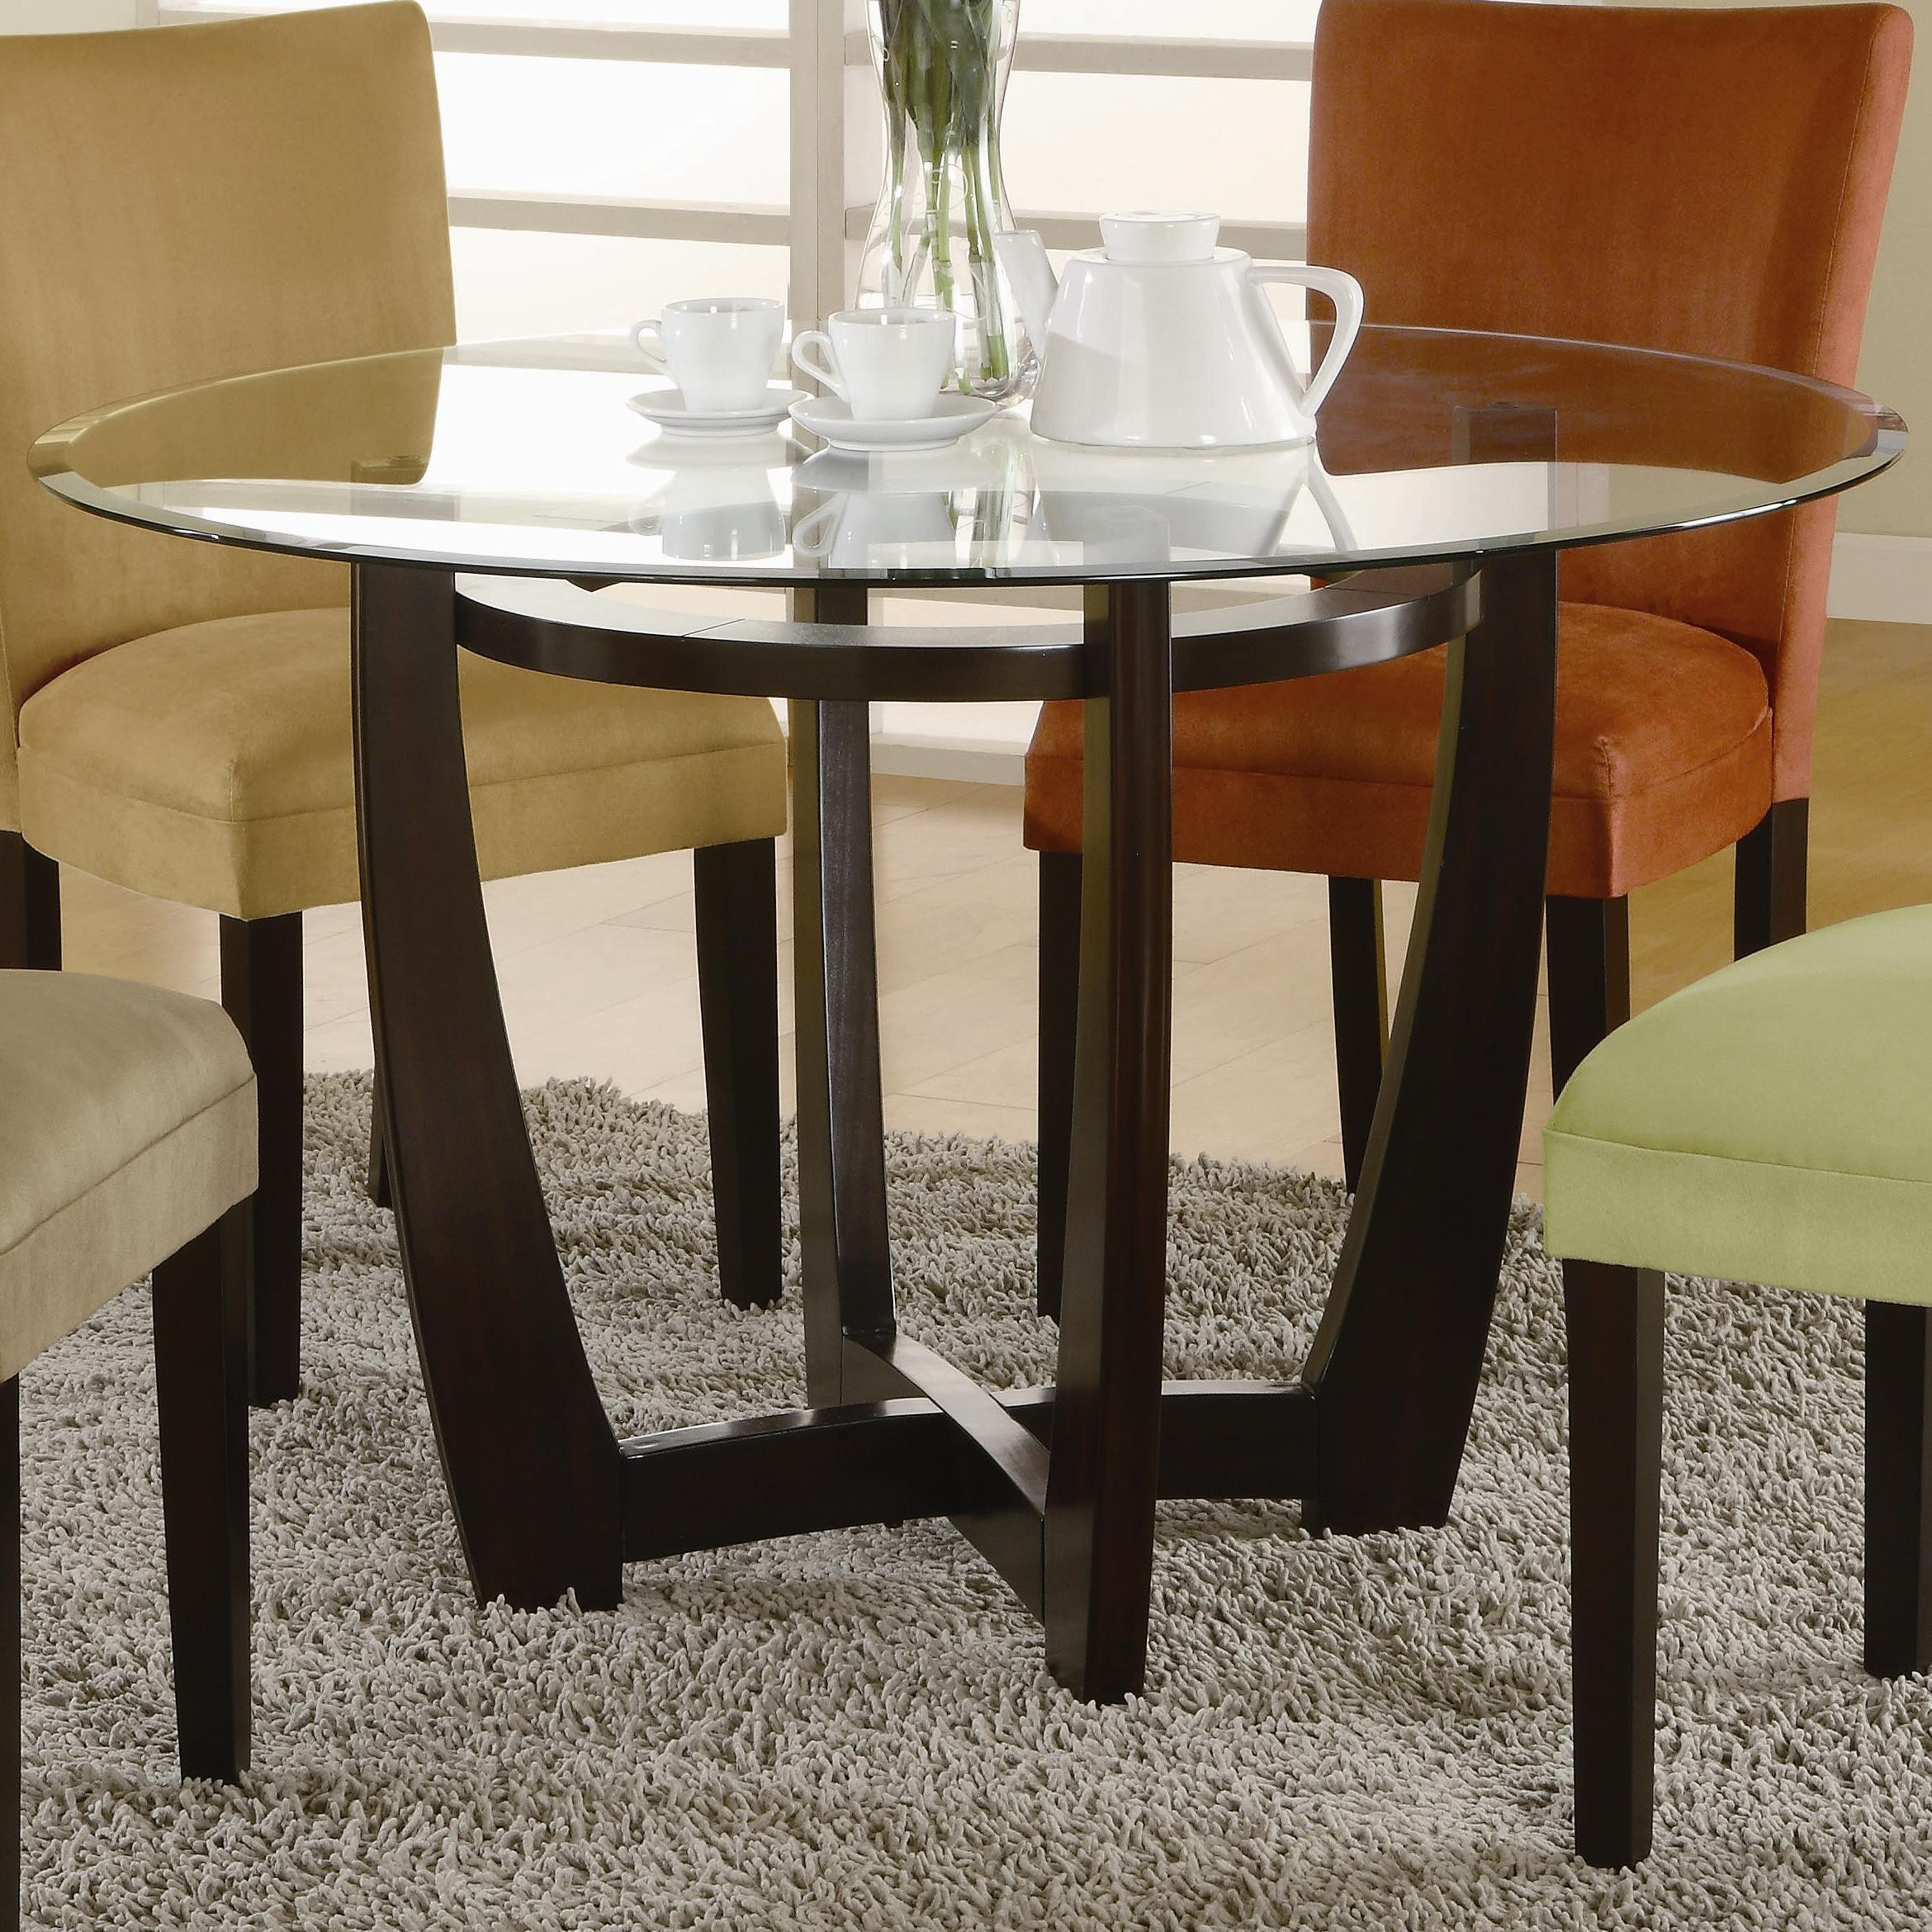 wooden table bases for glass table